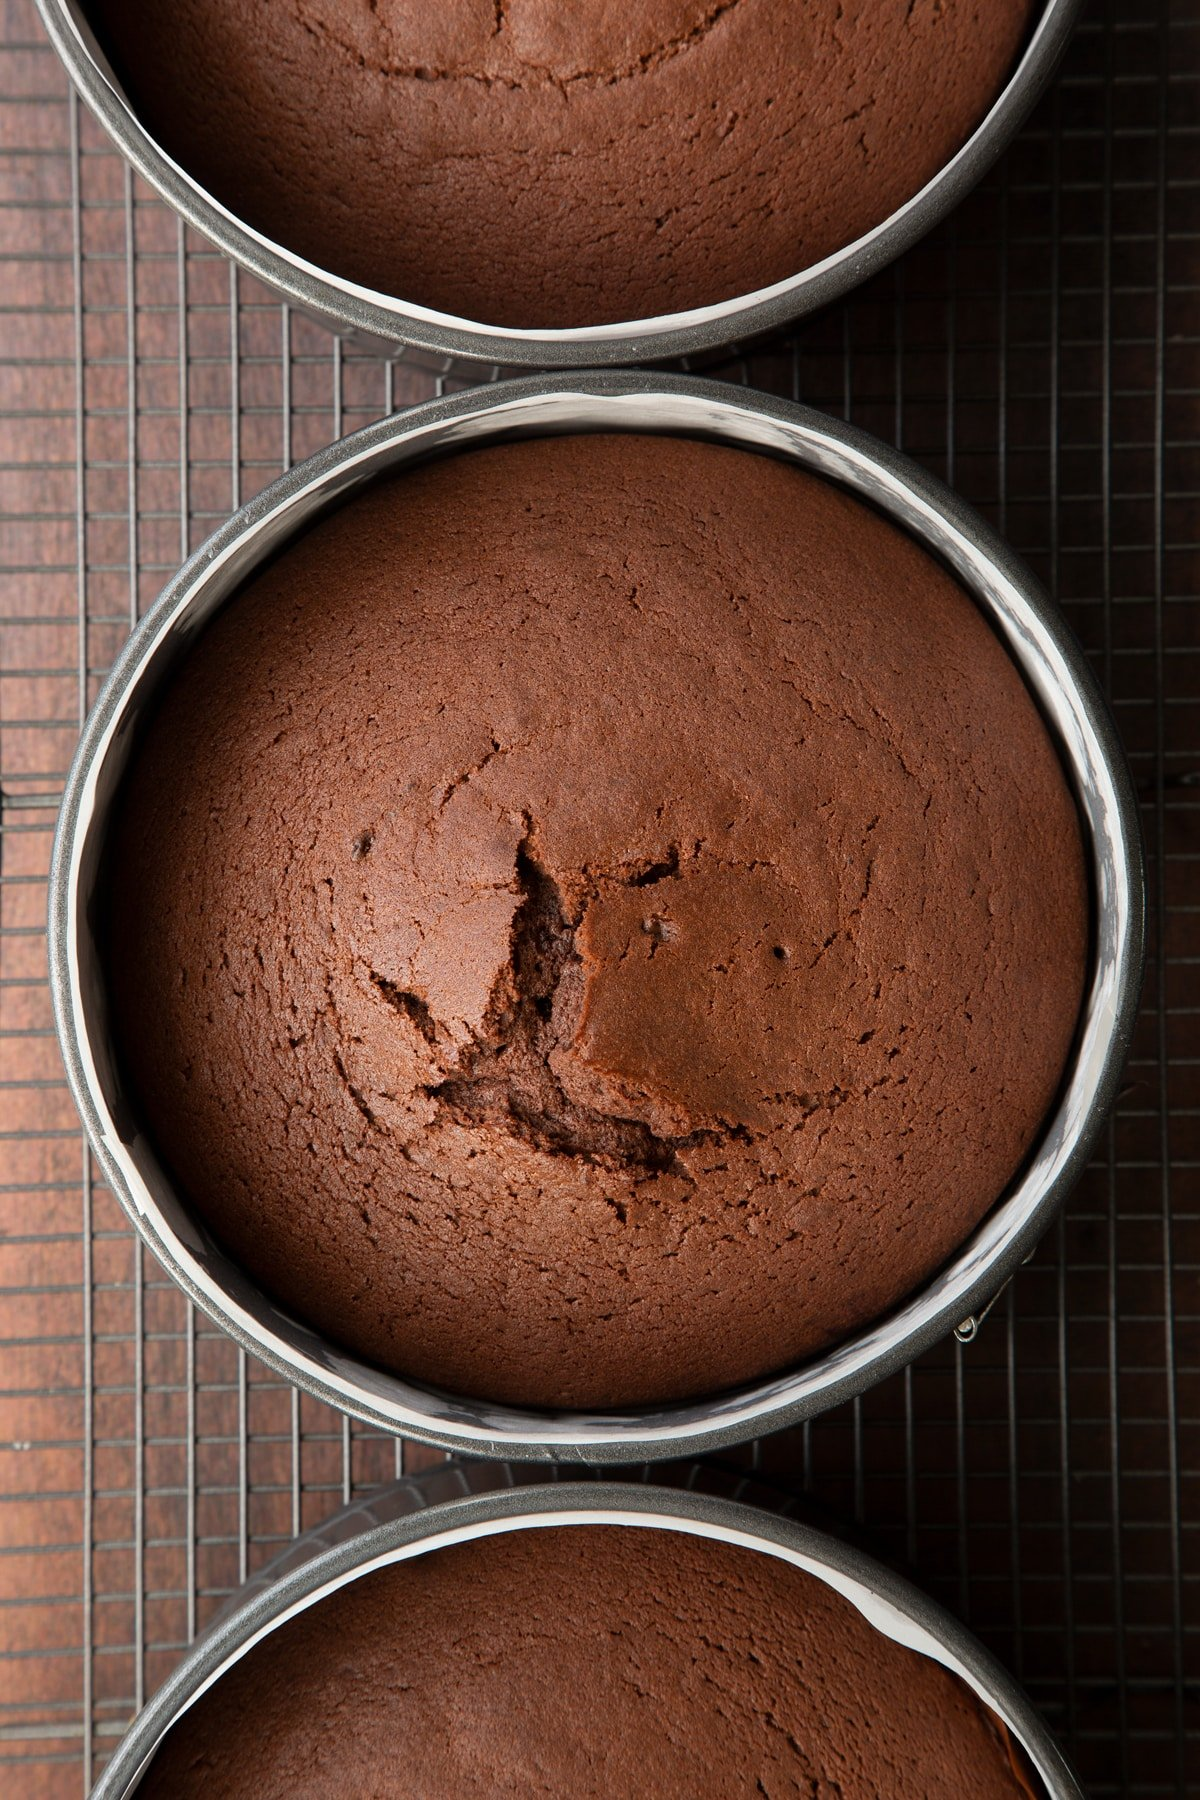 Freshly baked chocolate Baileys cake in three lined tins on a wire cooling rack.